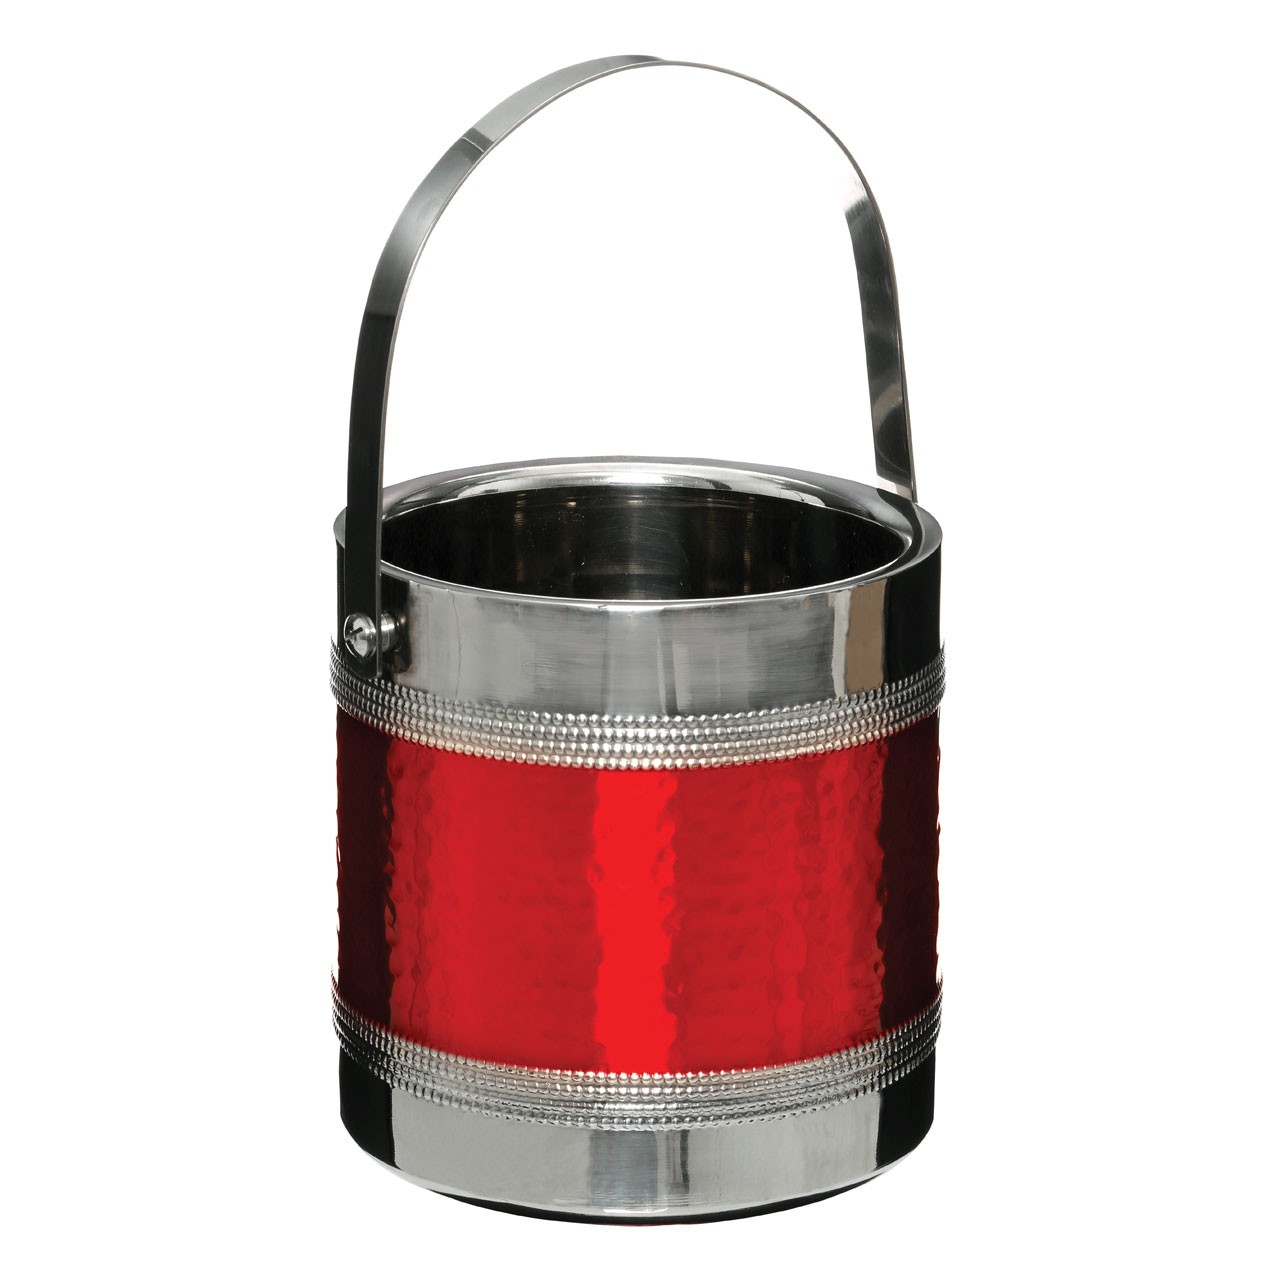 Ice Bucket With Tongs Made of Stainless Steel and Hammered Red B